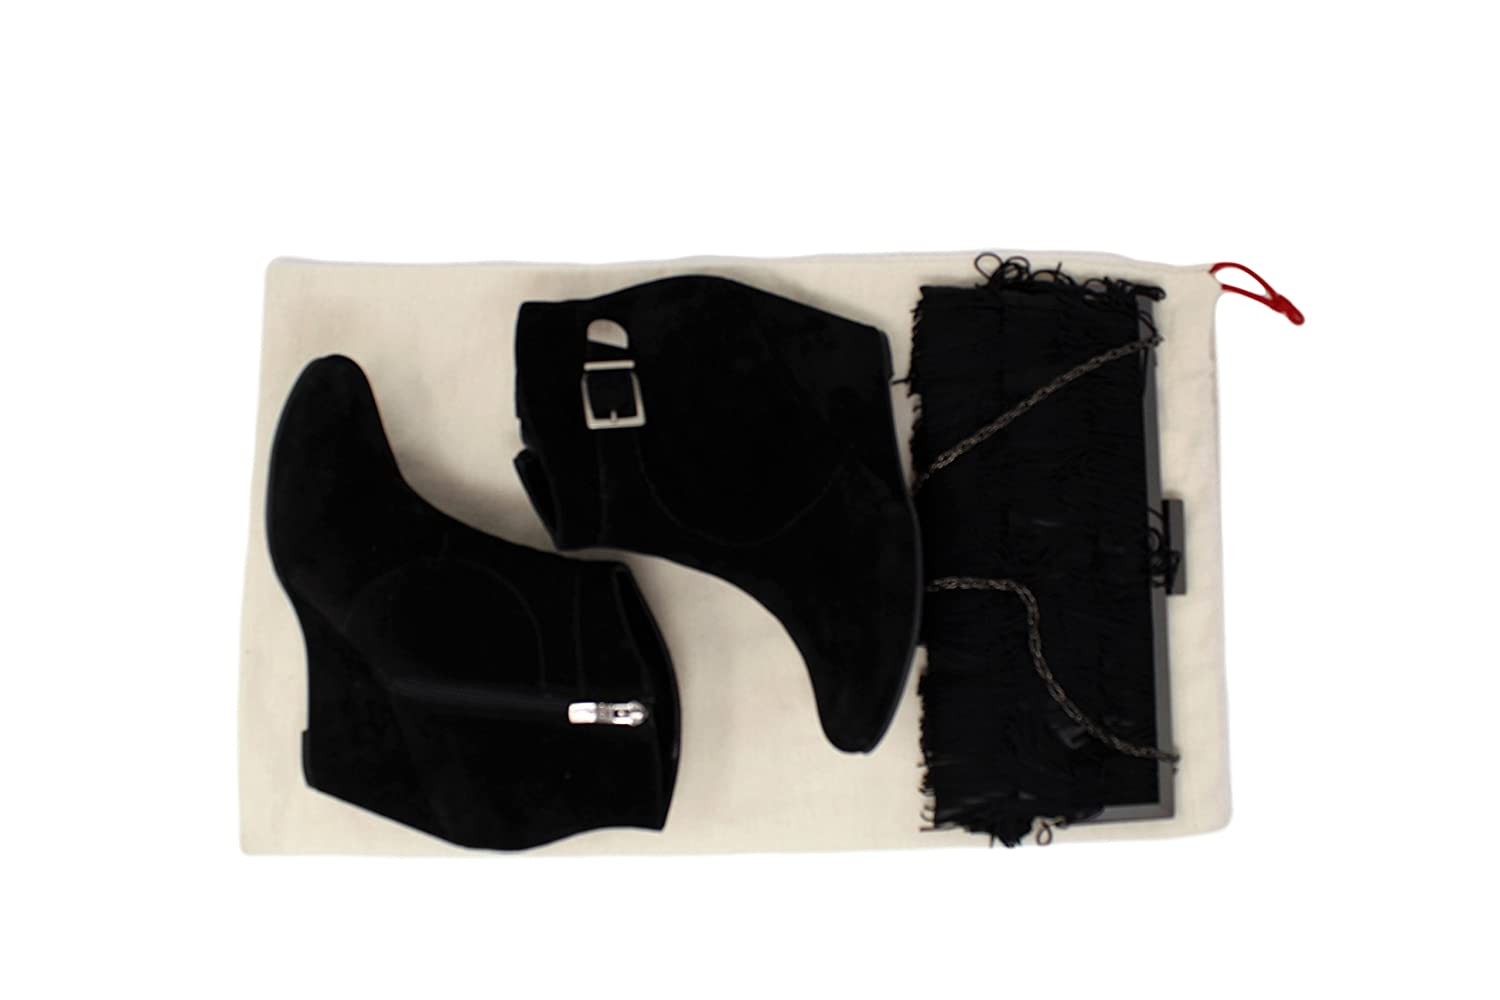 Pack of 2 Earthwise Boot Shoe Bag 100/% Cotton MADE IN THE USA with Drawstring for storing and protecting boots